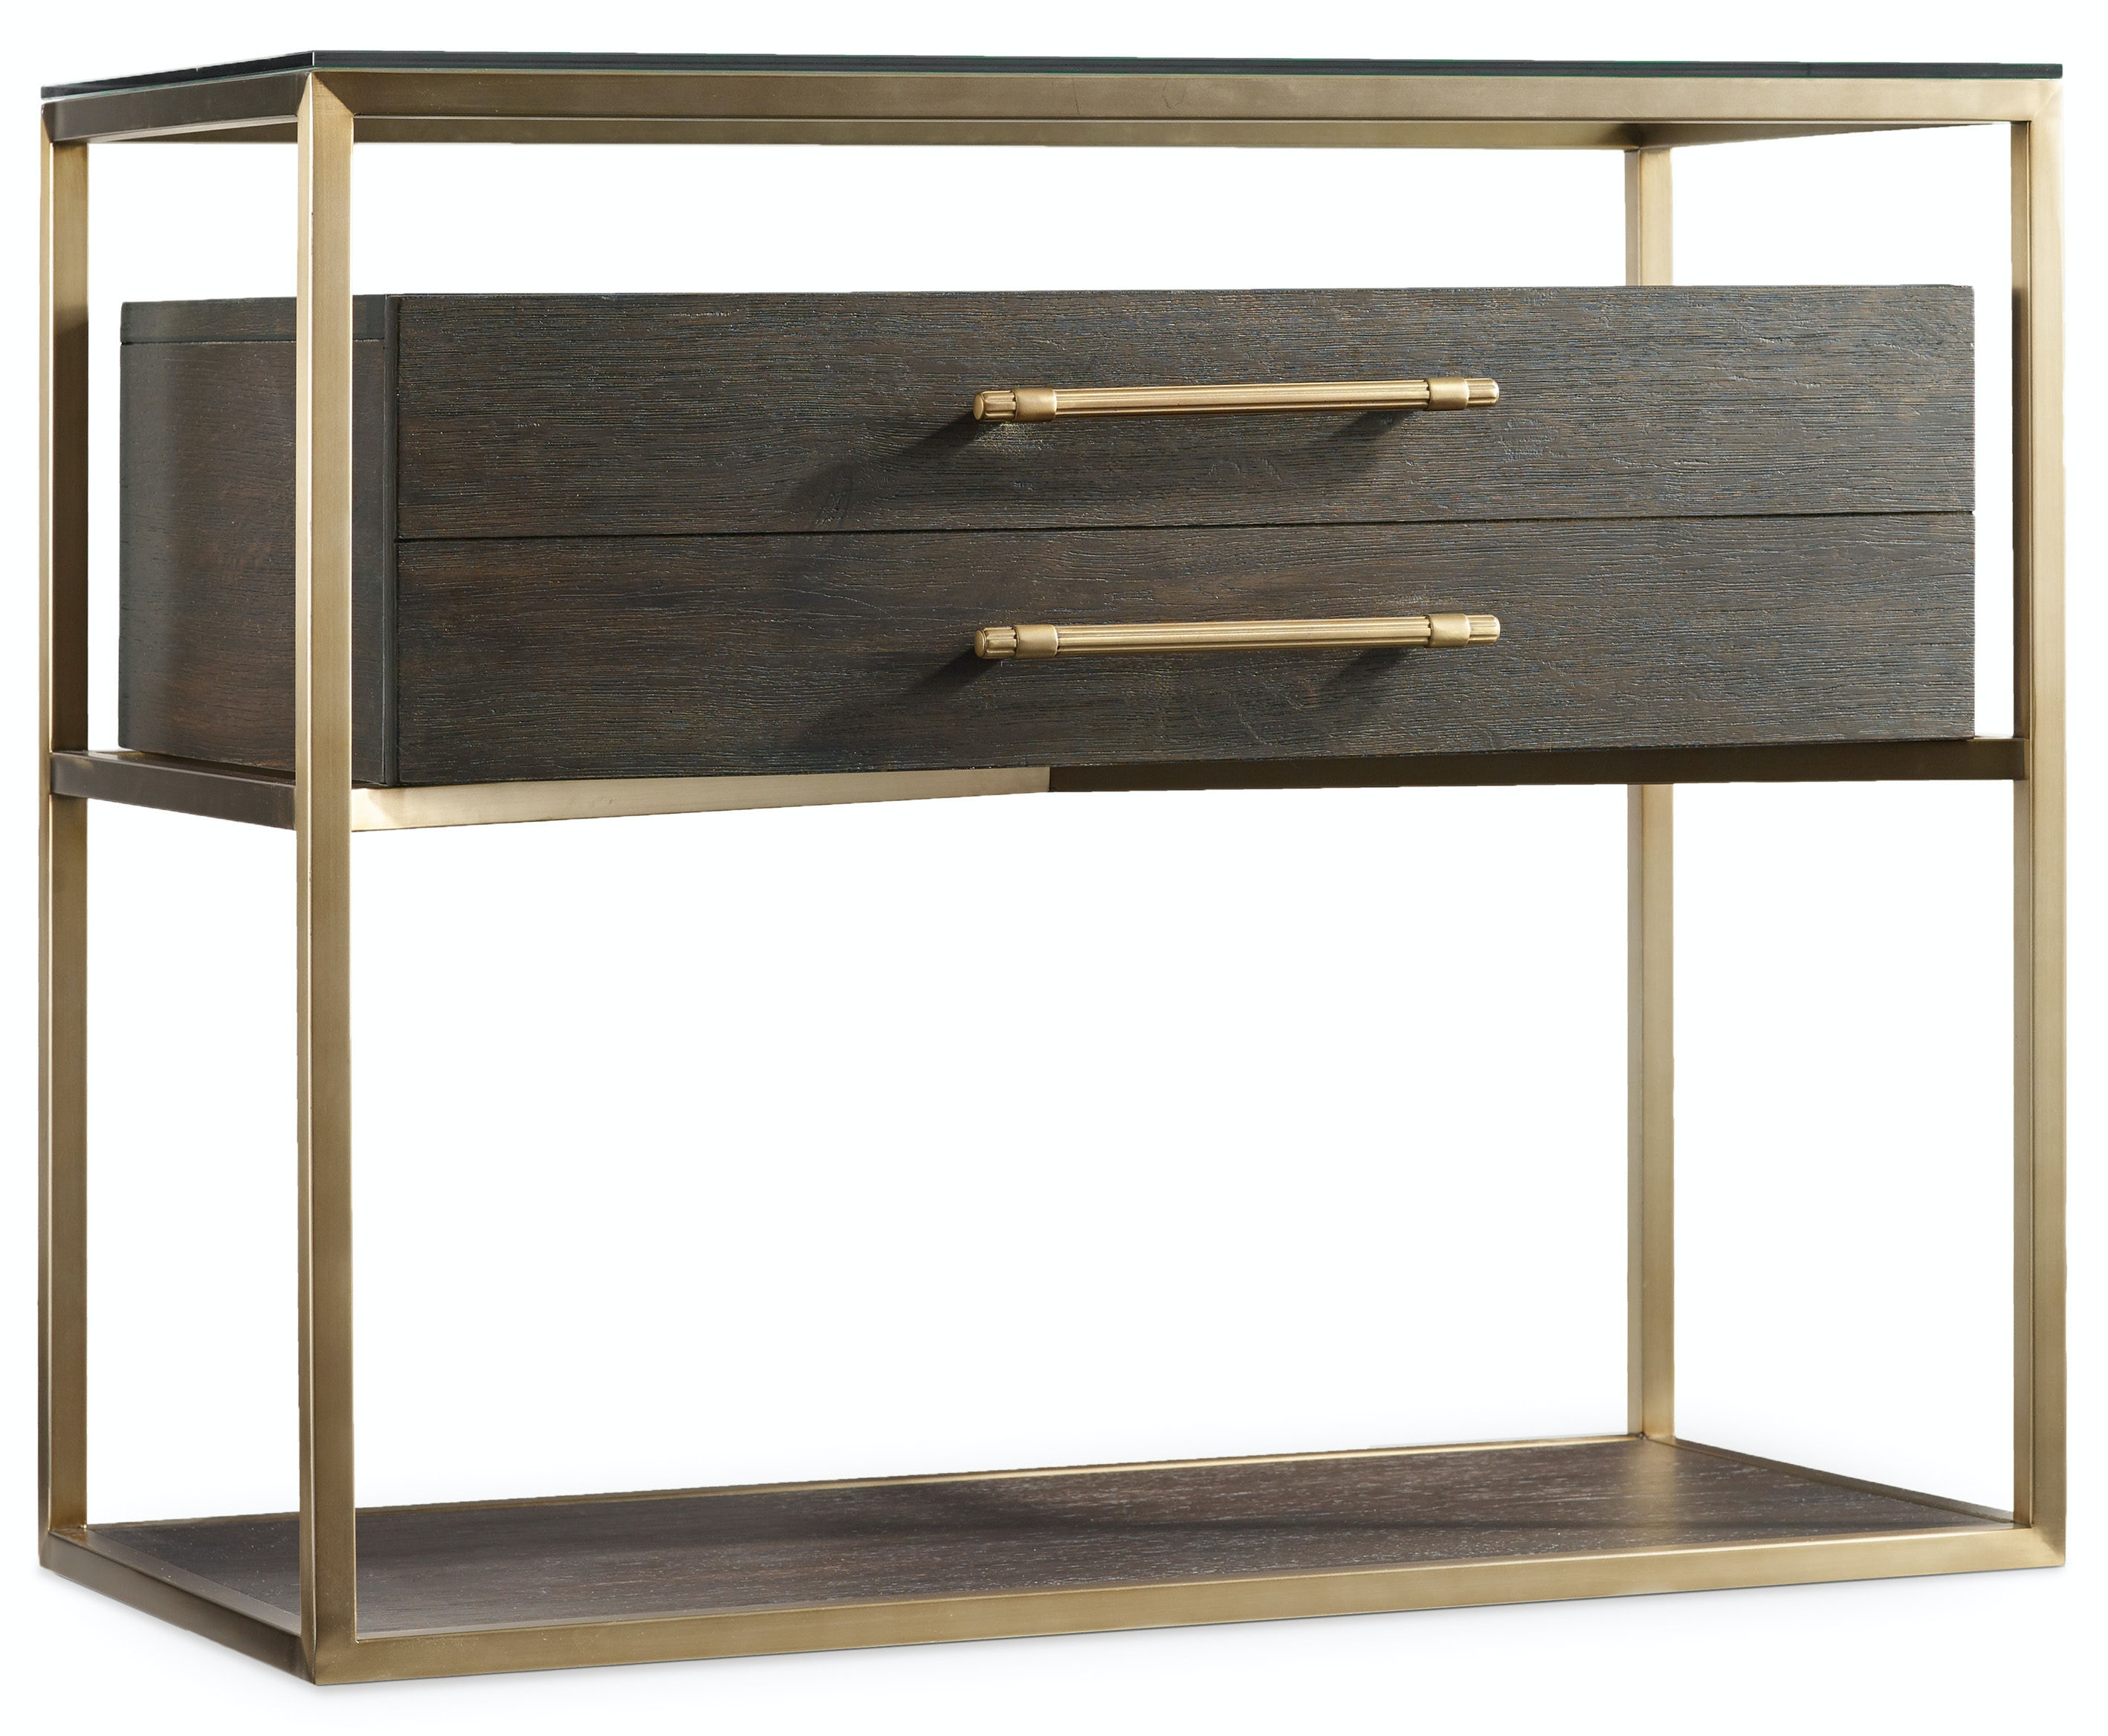 Curata One Drawer Nightstand